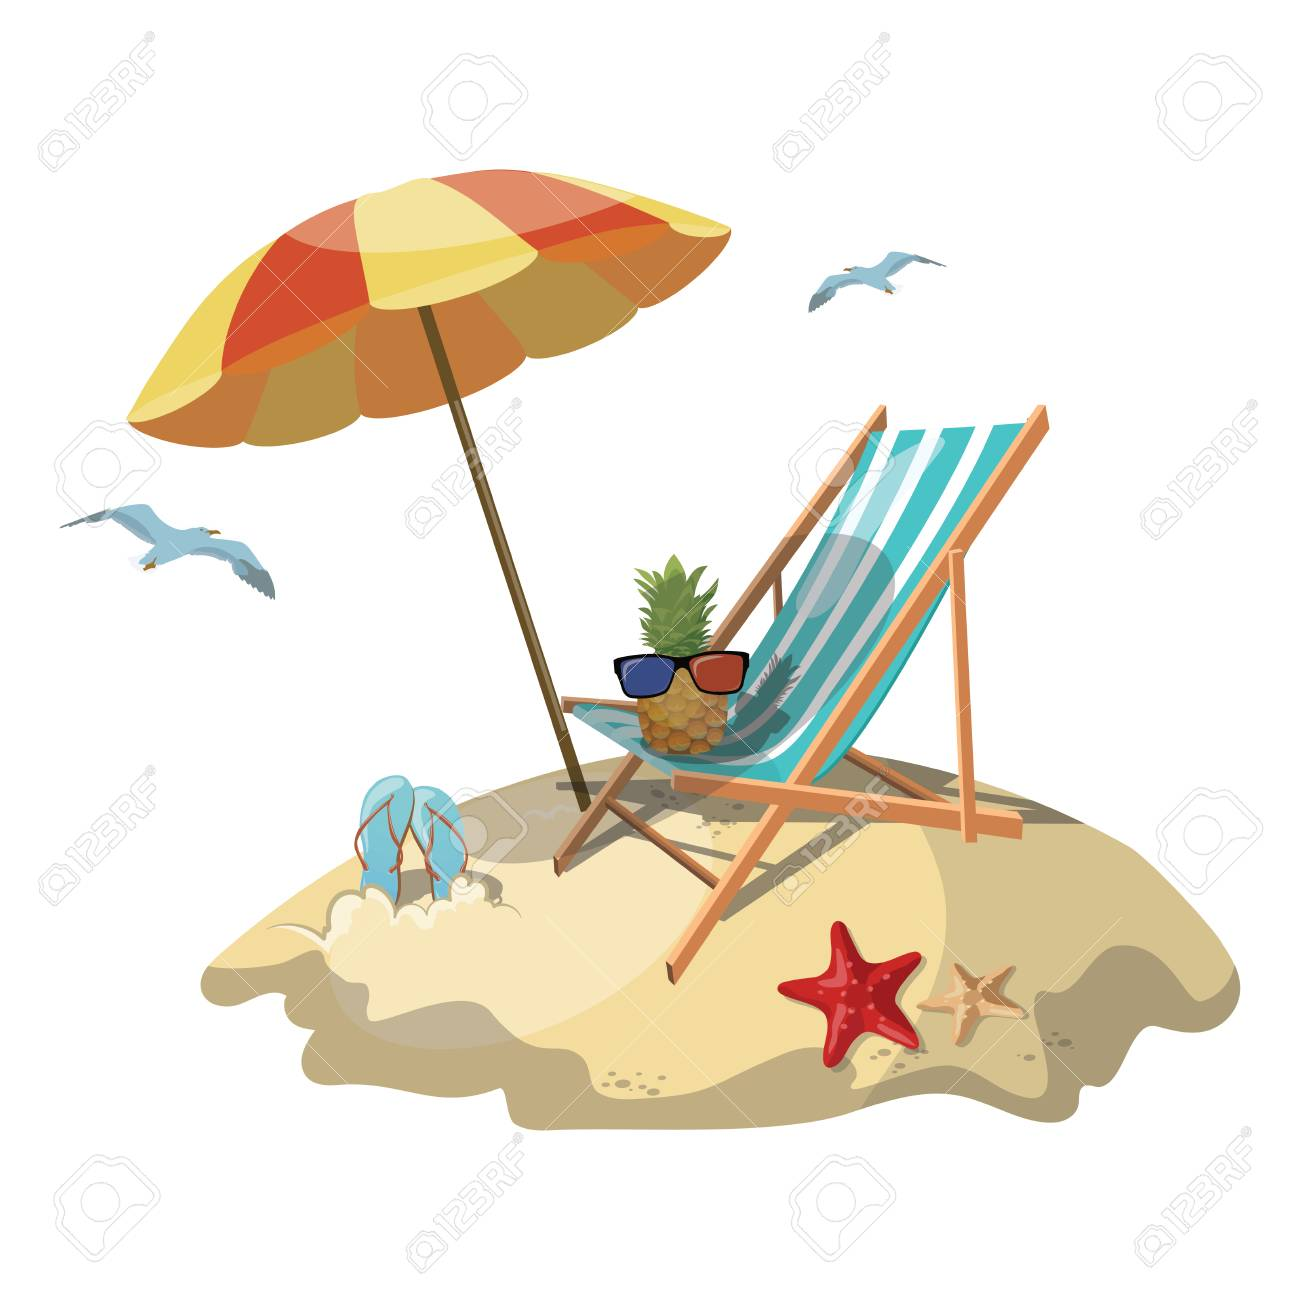 Cartoon Island In The Sea With A Chaise Longue And Surfboard ... on chaise furniture, chaise sofa sleeper, chaise recliner chair,